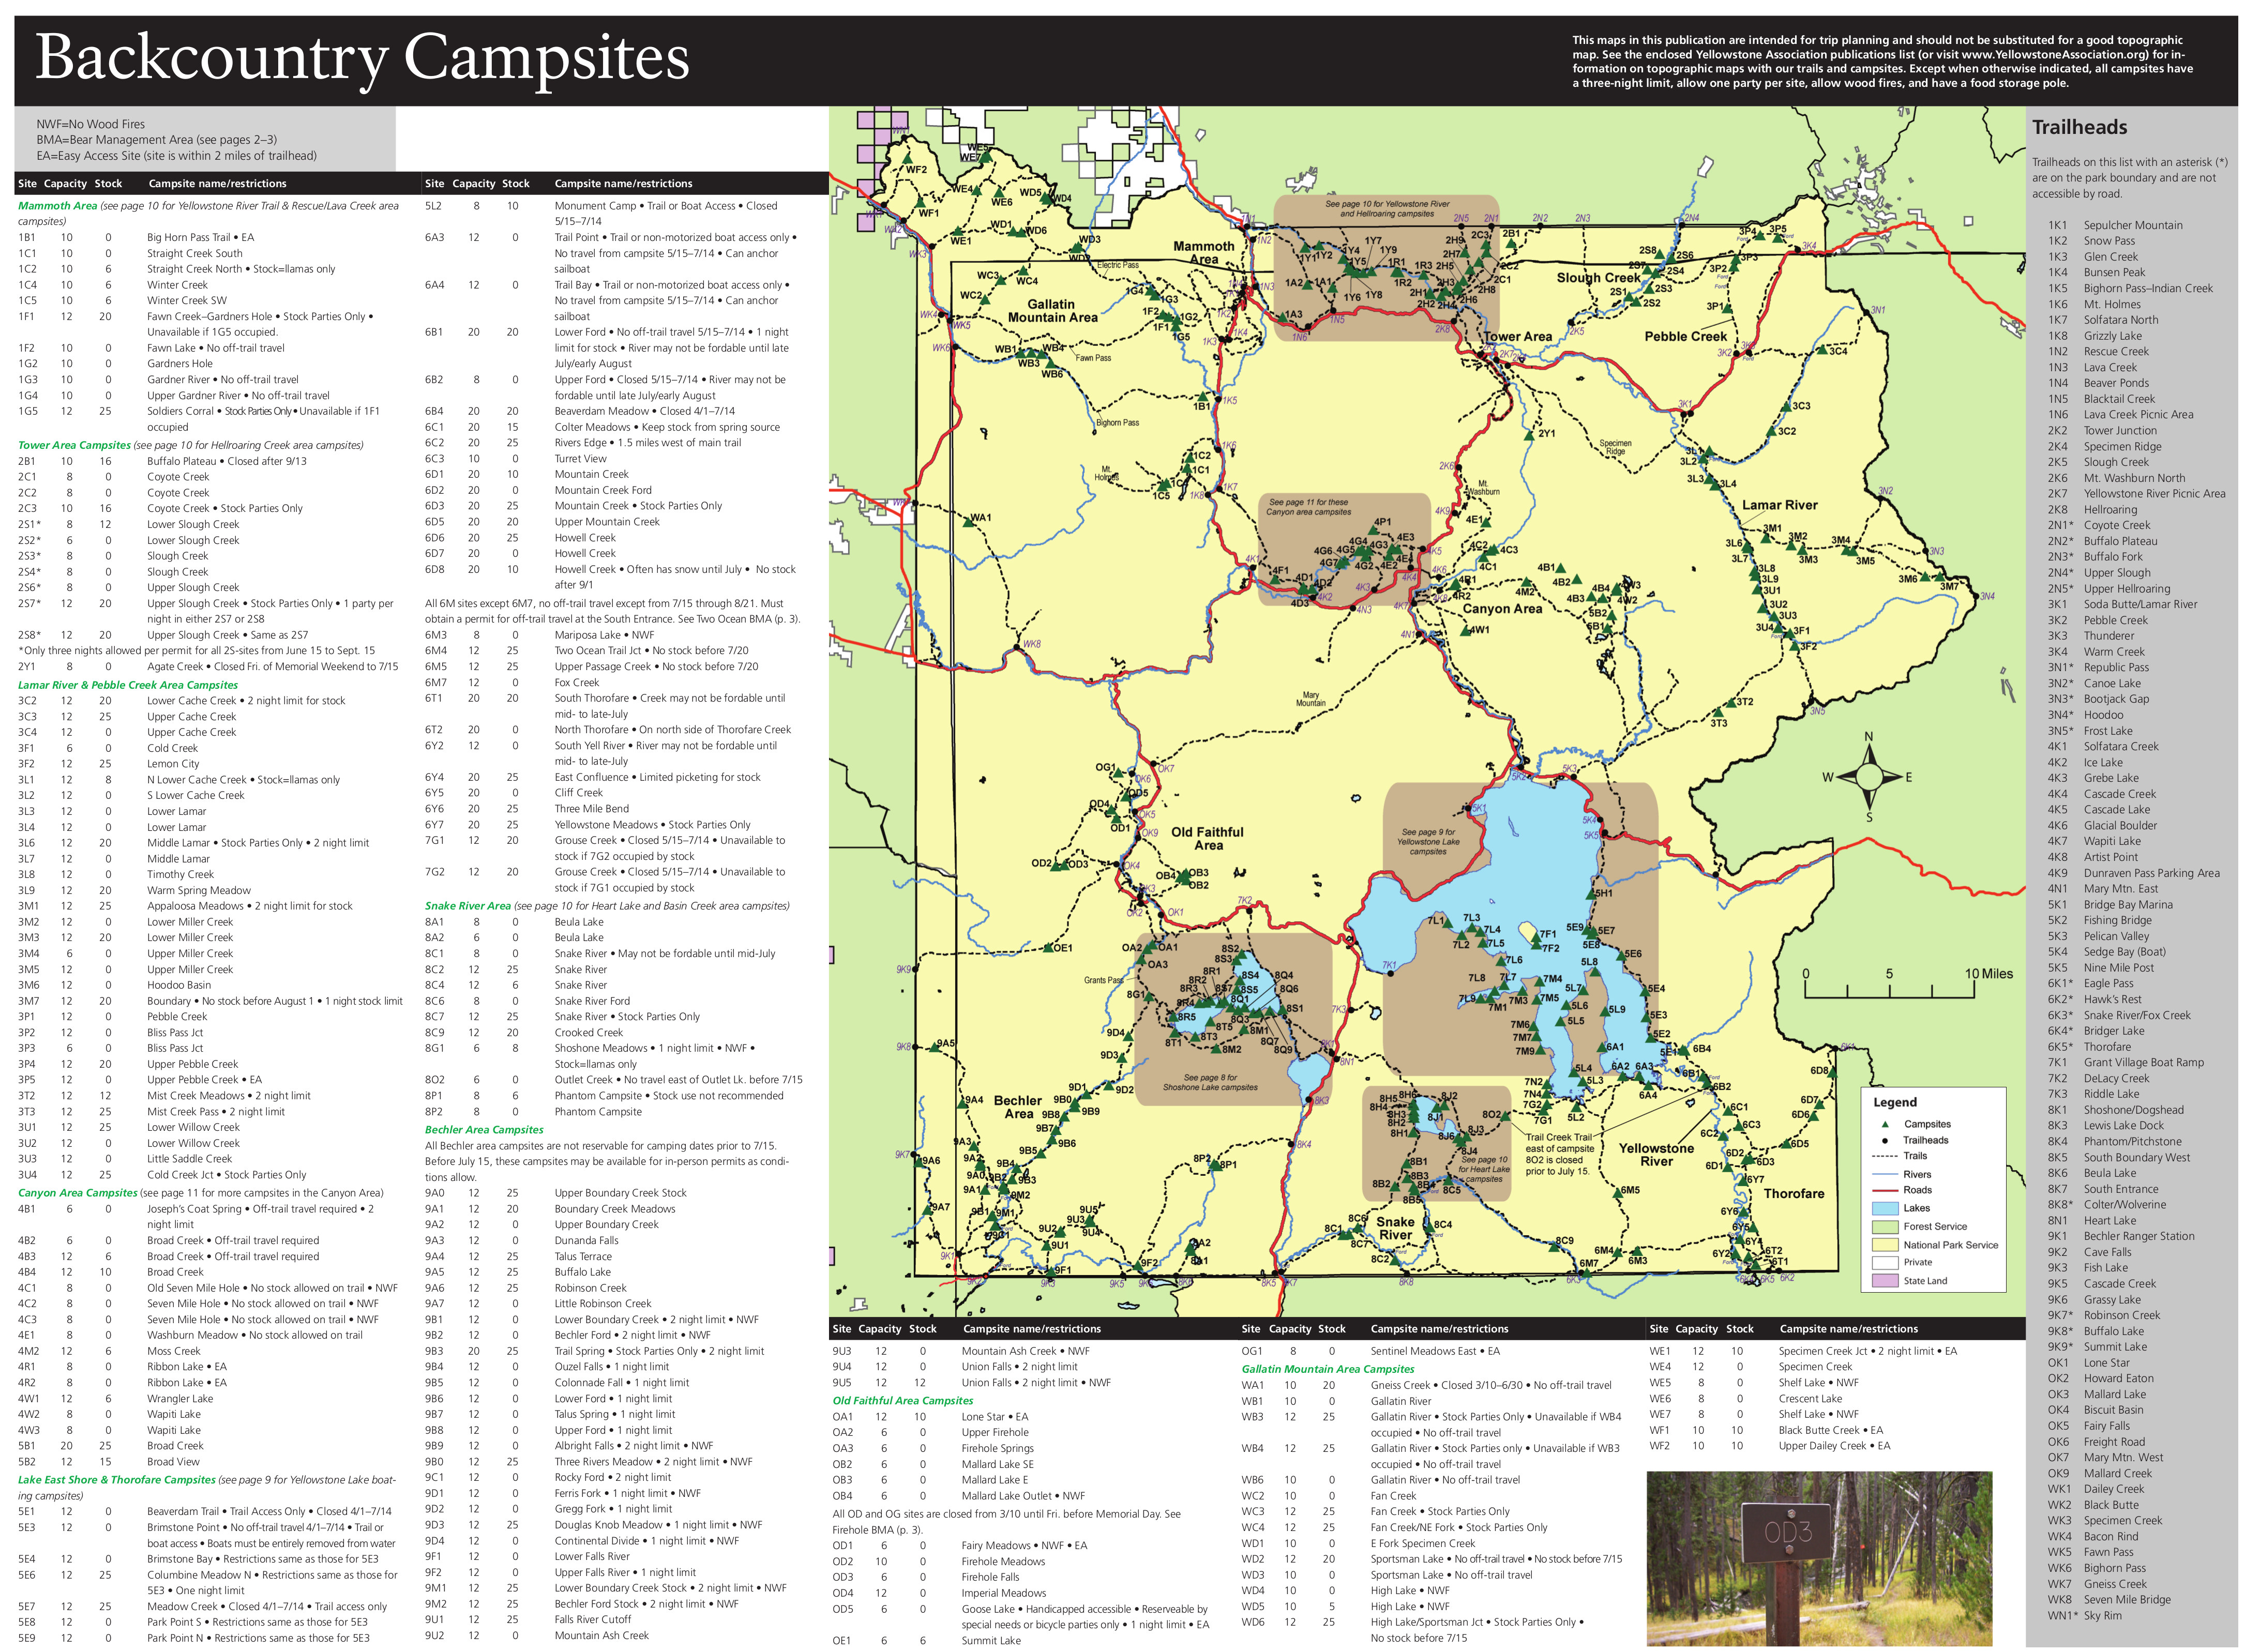 Yellowstone Maps | NPMaps.com - just free maps, period. on yellowstone elevation changes, rocky mountains, yellowstone park elevation, land elevation maps, texas elevation maps, sea level elevation maps, old faithful geyser, utah elevation maps, devils tower national monument, rocky mountain national park, wyoming elevation maps, yellowstone lake, mesa verde national park, yellowstone distance maps, great smoky mountains national park, idaho elevation maps, yosemite national park, alaska elevation maps, glacier national park, missouri elevation maps, grand teton national park, portland elevation maps, west yellowstone snowmobiling maps, sequoia national park, statue of liberty, grand canyon national park, grand prismatic spring, new orleans elevation maps, montana elevation maps, florida elevation maps, lake elevation maps, rocky mountain elevation maps, colorado elevation maps, everglades national park, washington elevation maps,